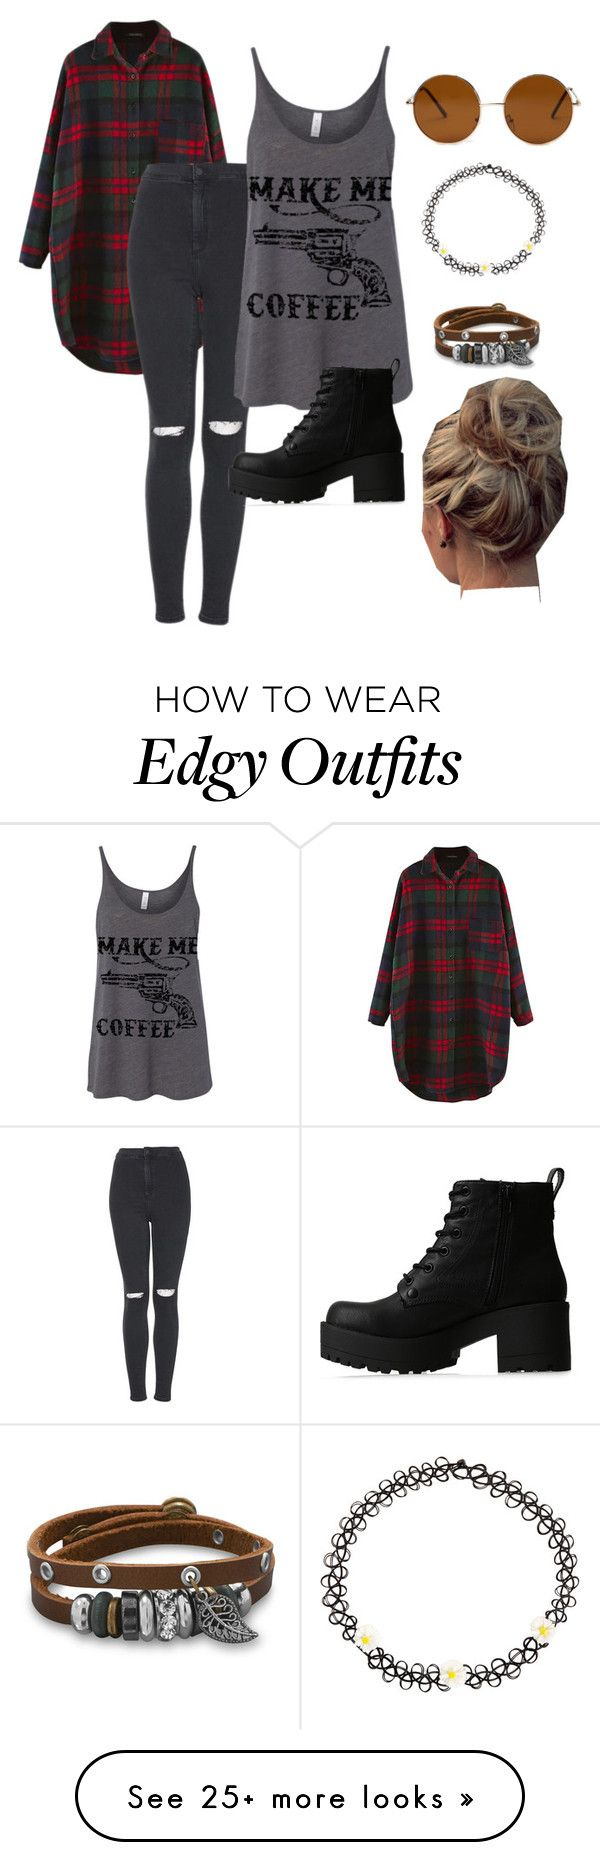 """""""Boho+Grunge Mix"""" by trinj3 on Polyvore featuring Topshop, Lipstik, Forever 21, Monsoon, BillyTheTree, women's clothing, women, female, woman and misses (Fall Top Chic)"""